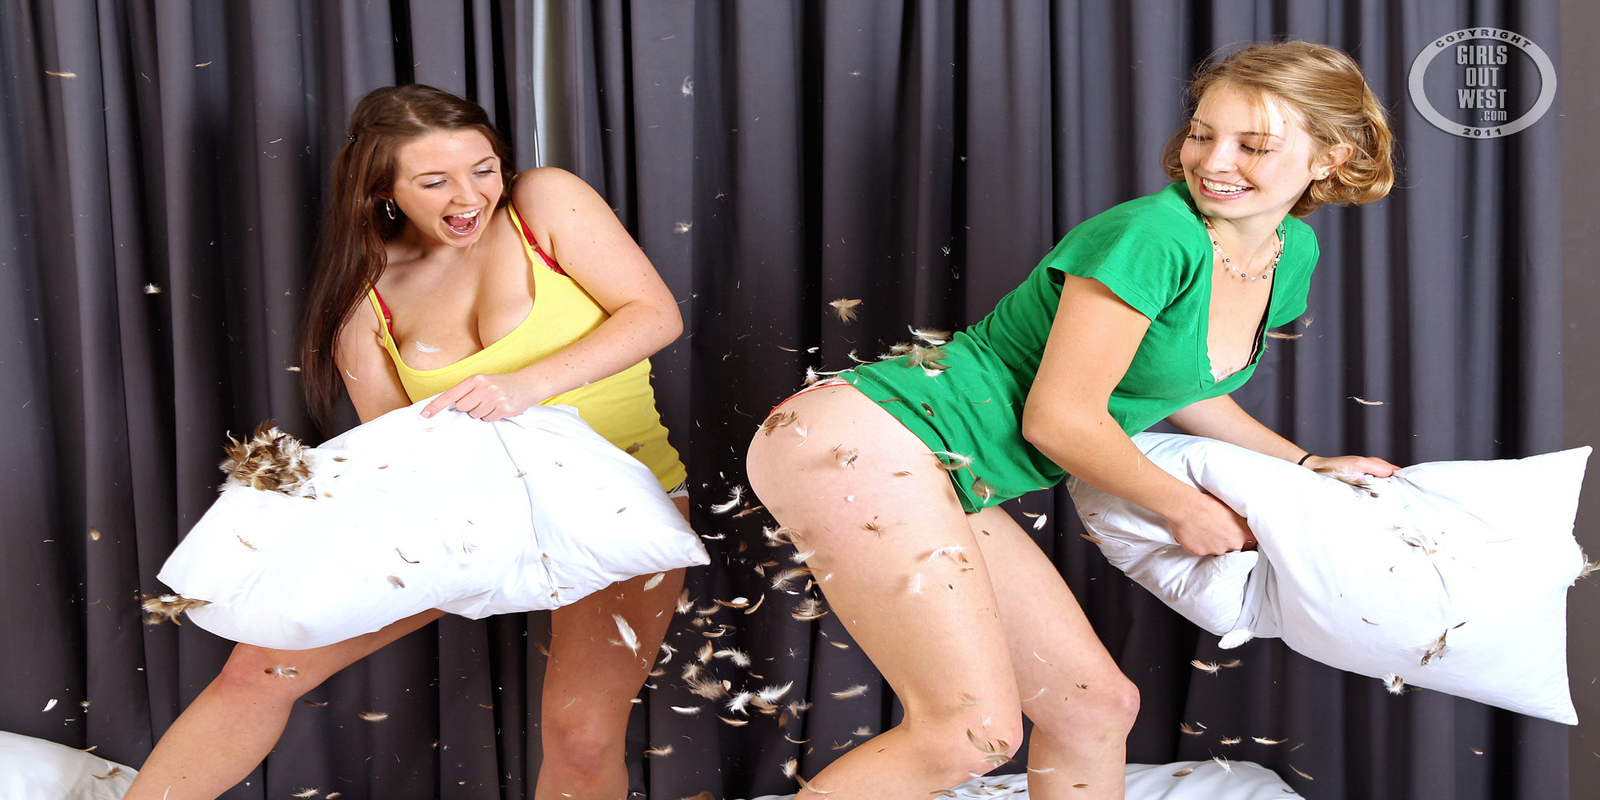 eager-girls-sex-wife-wants-to-have-gang-bang